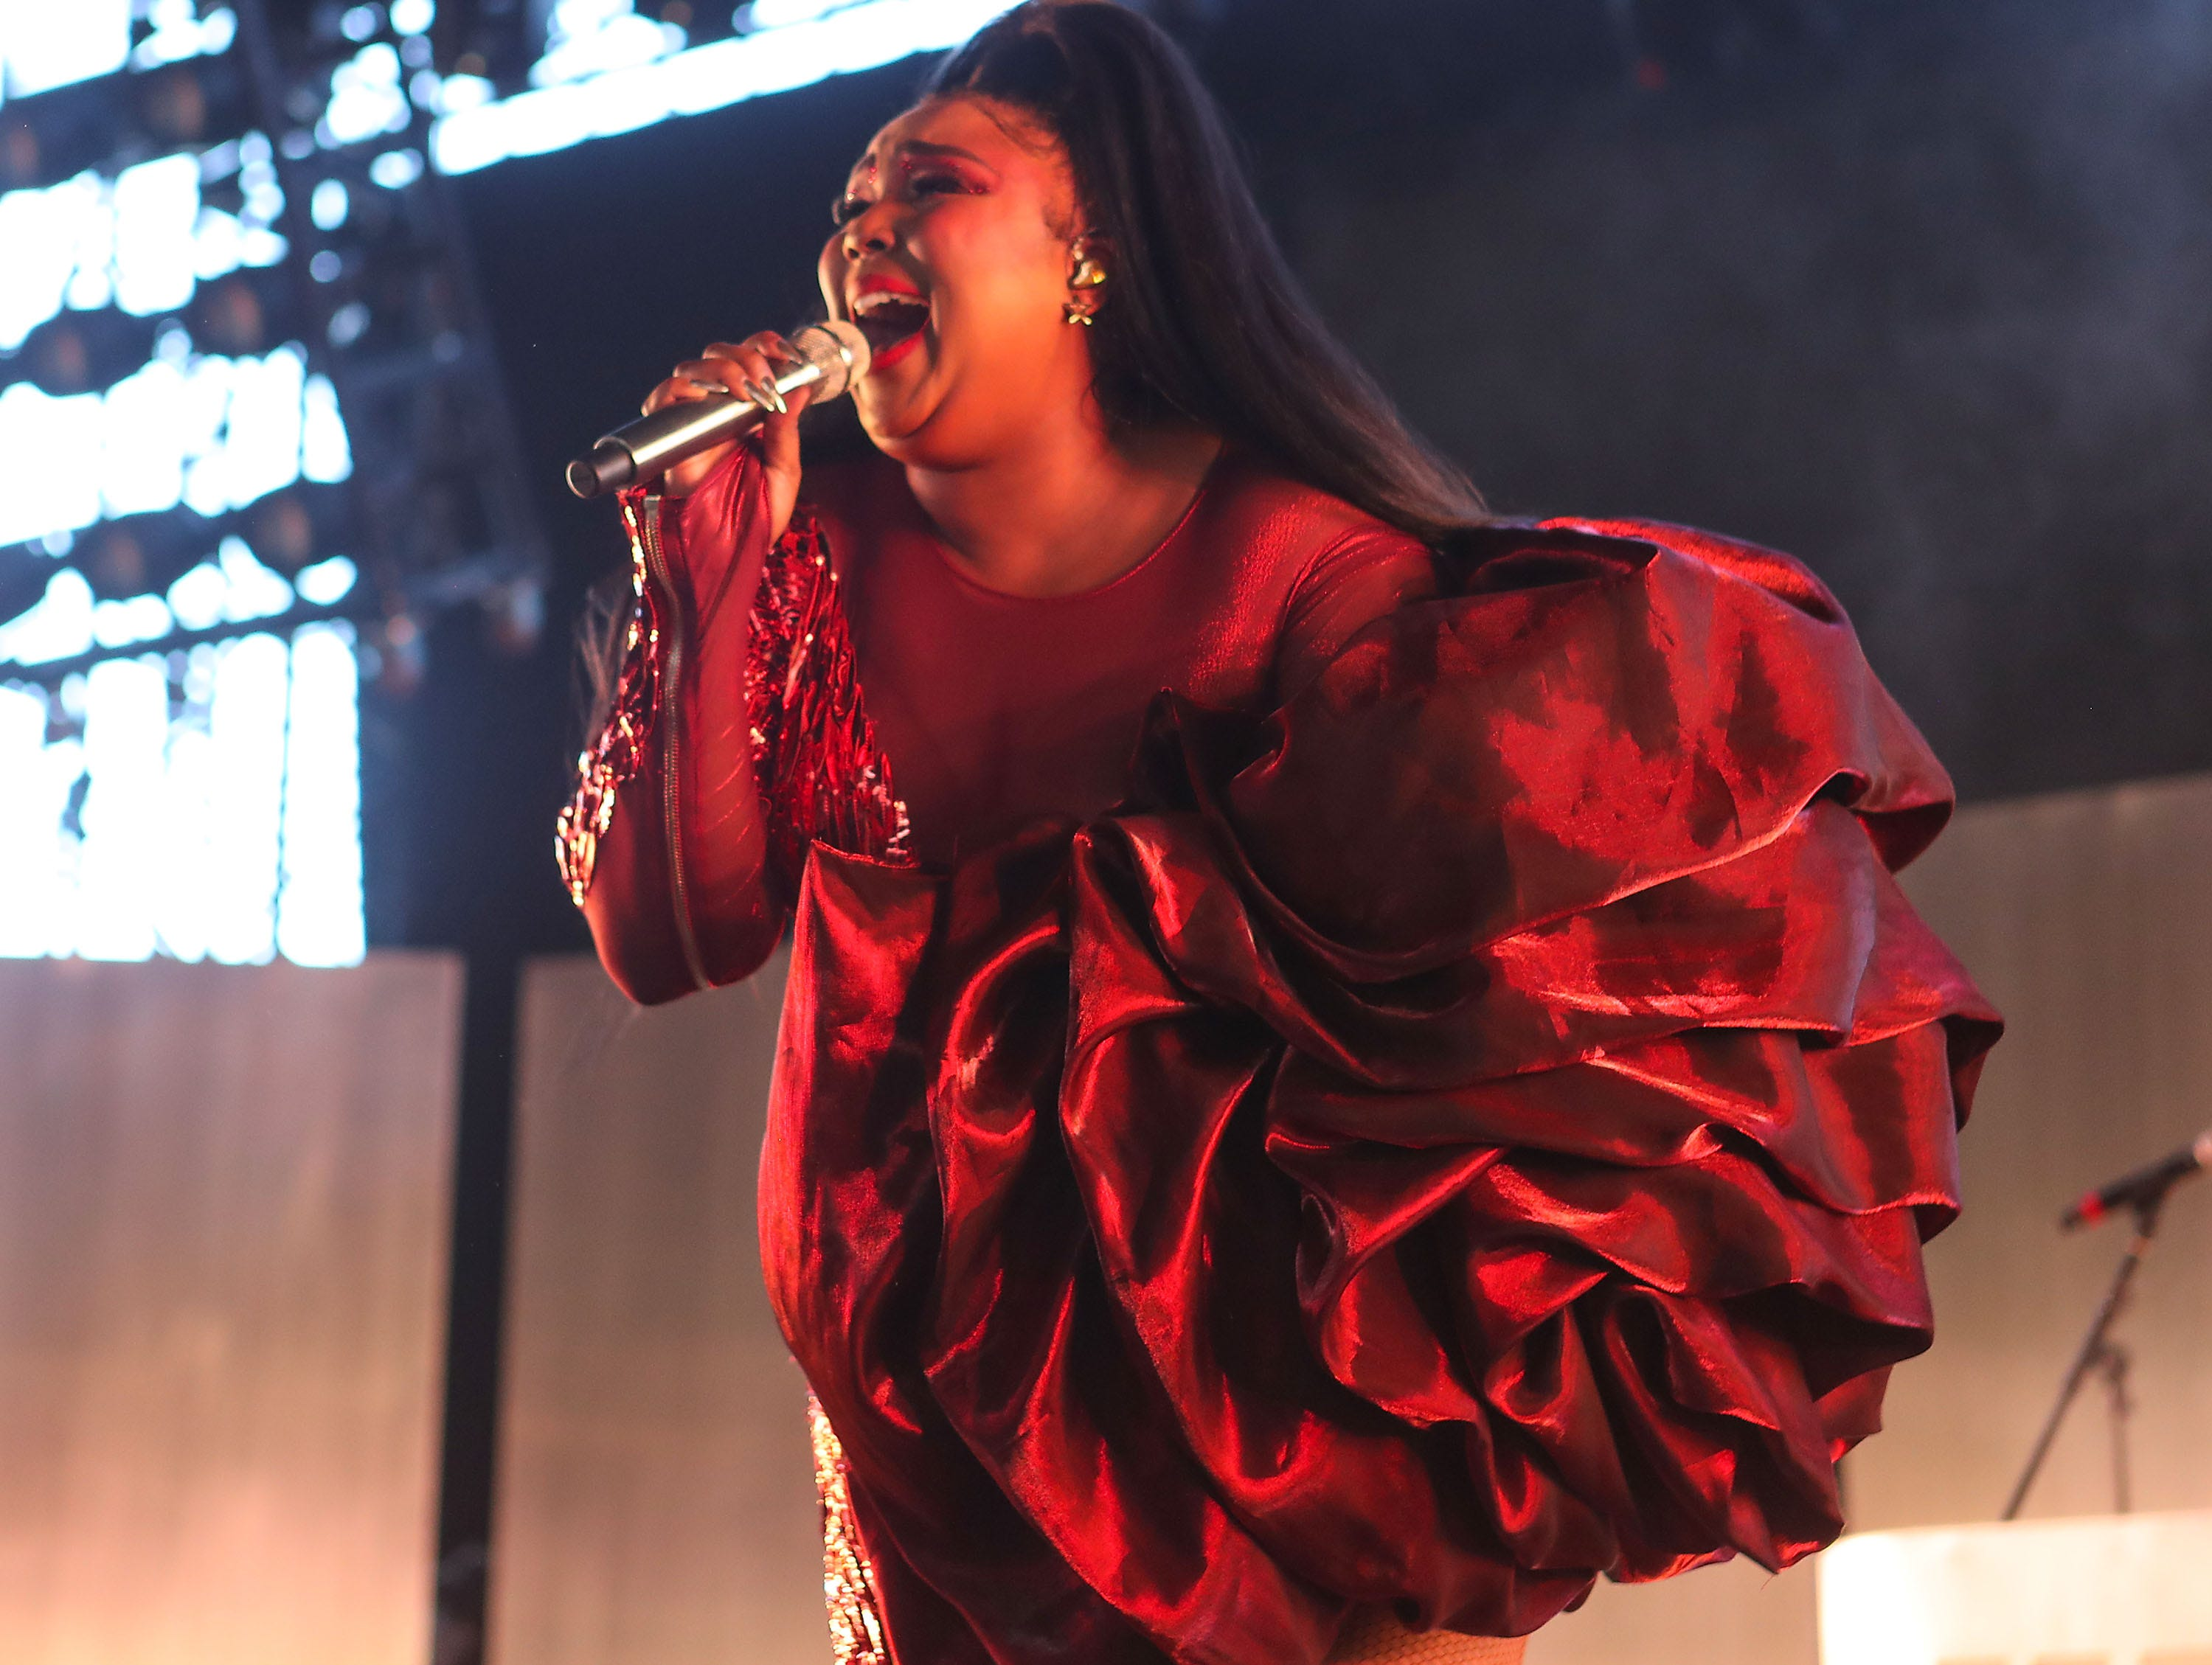 Lizzo performs at the Coachella Valley Music and Arts Festival in Indio, April 21, 2019.